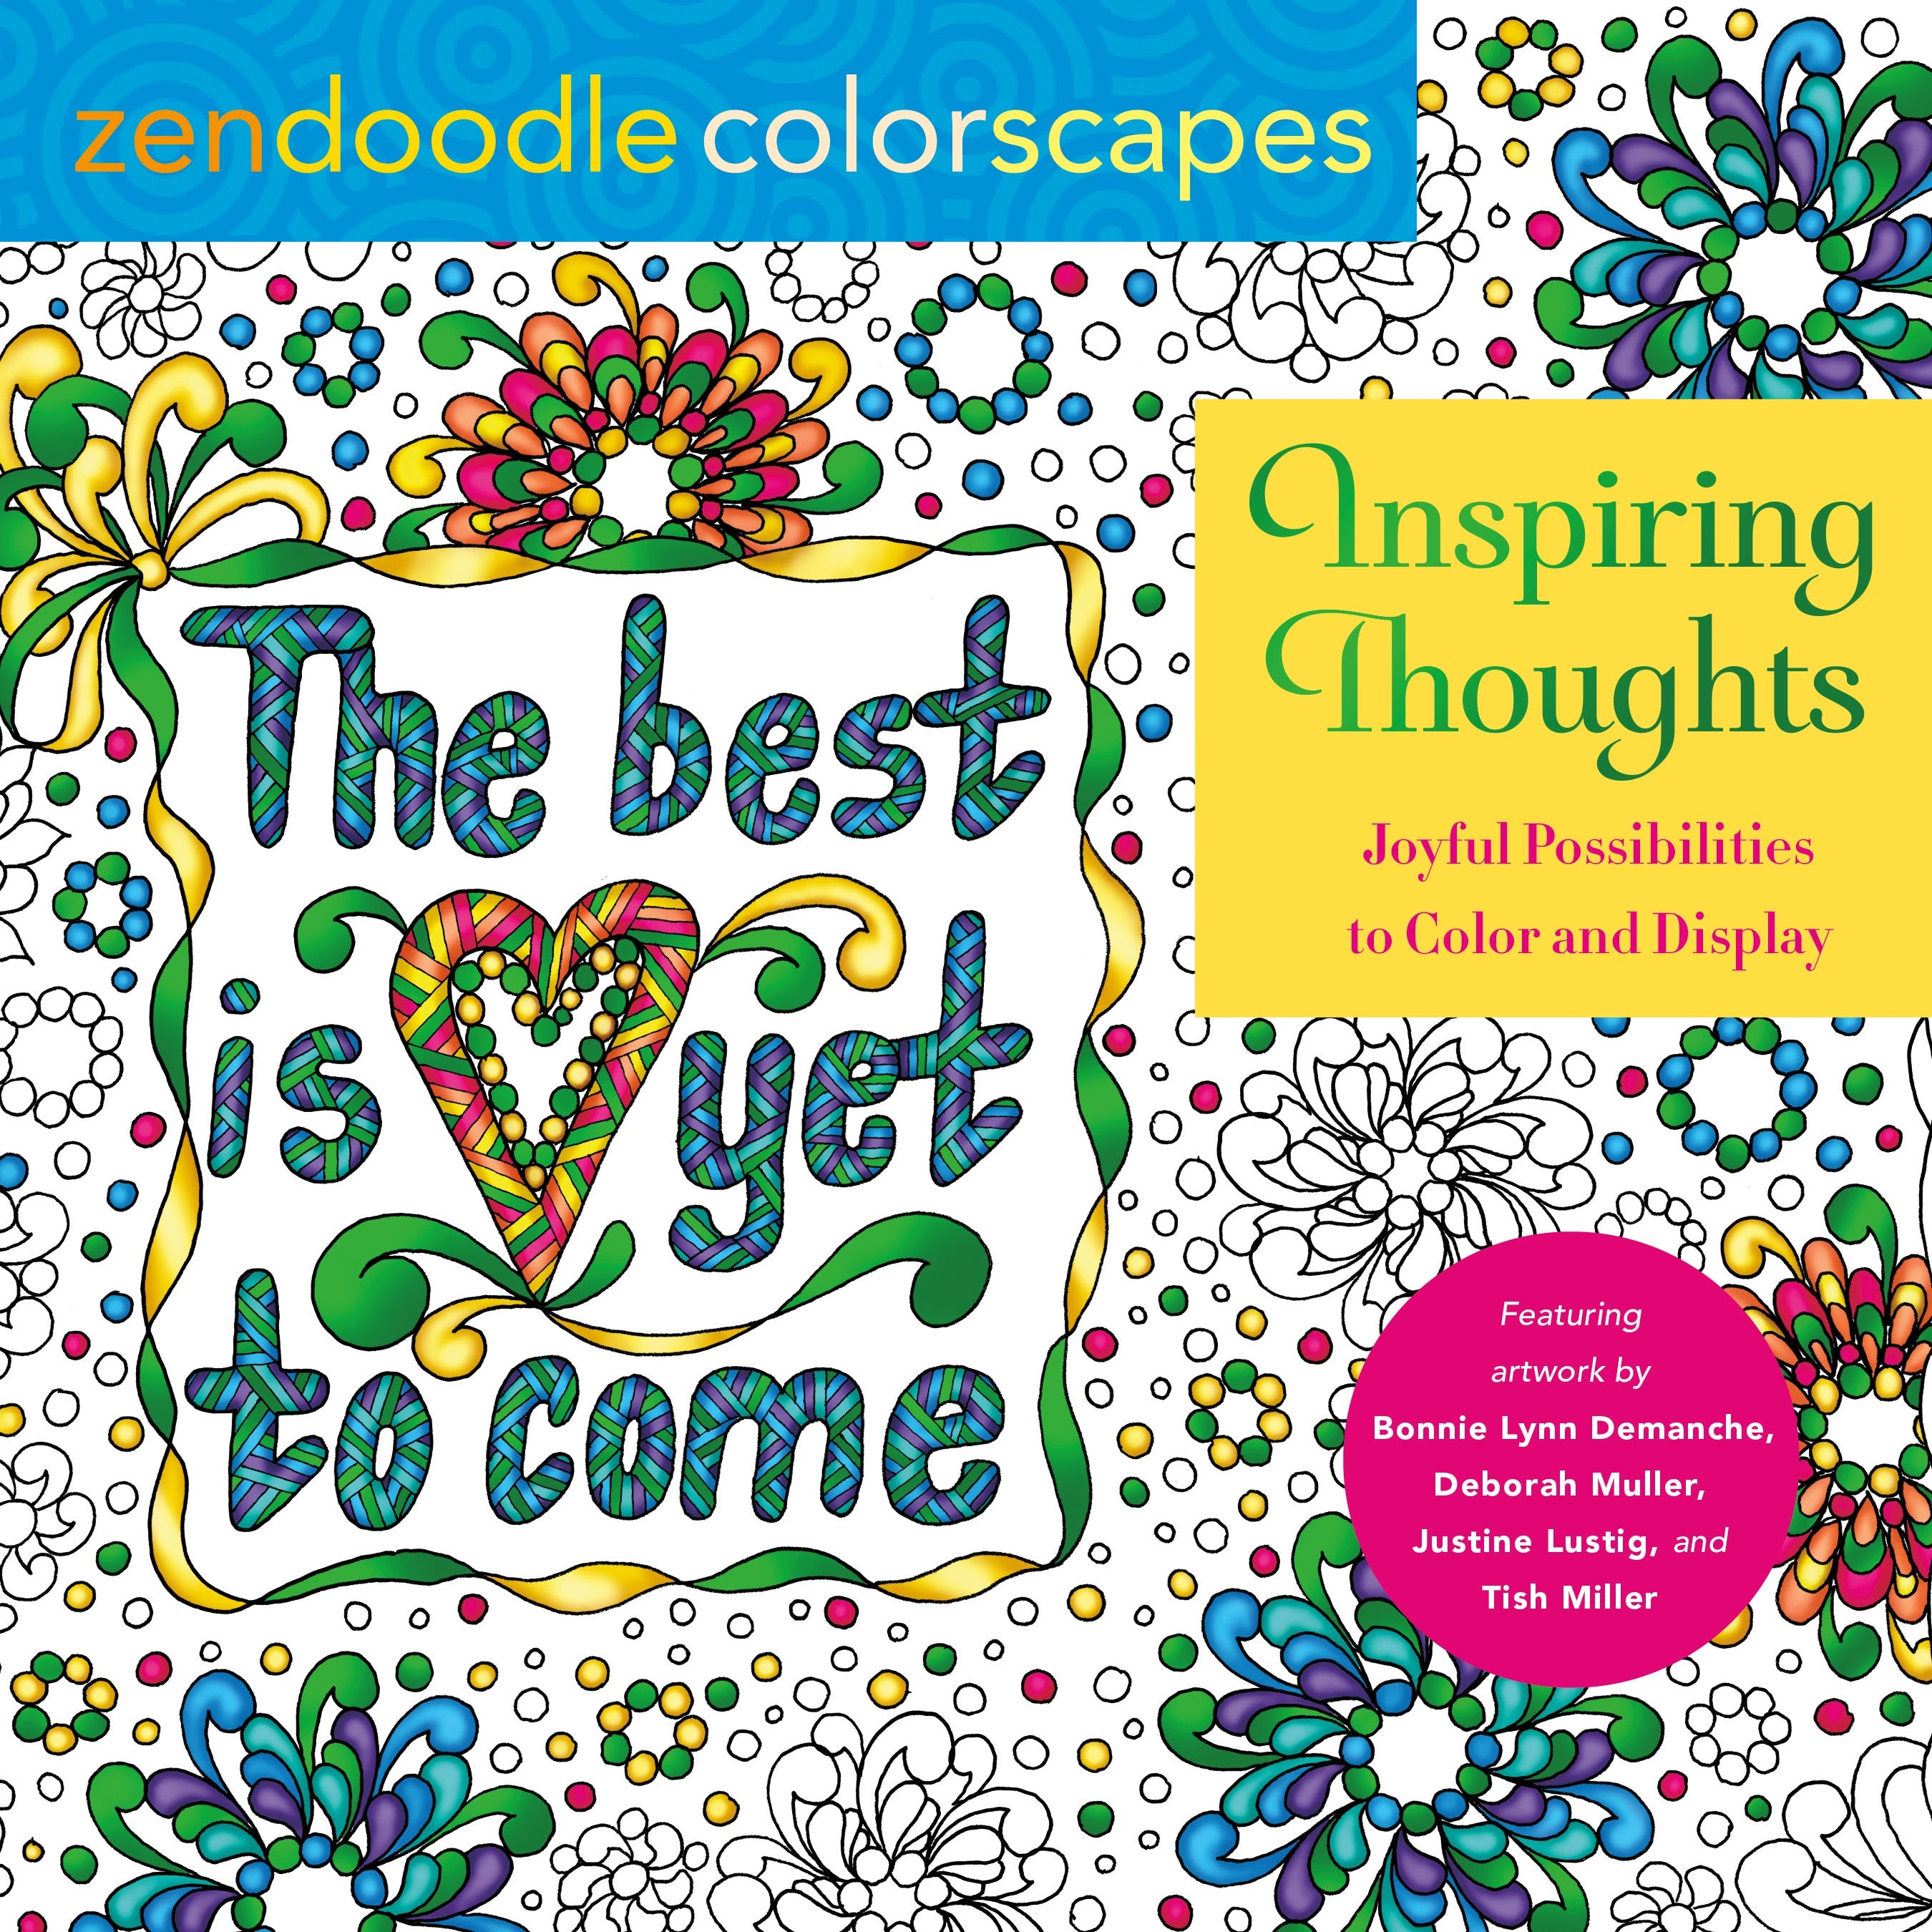 Image of Zendoodle Colorscapes: Inspiring Thoughts